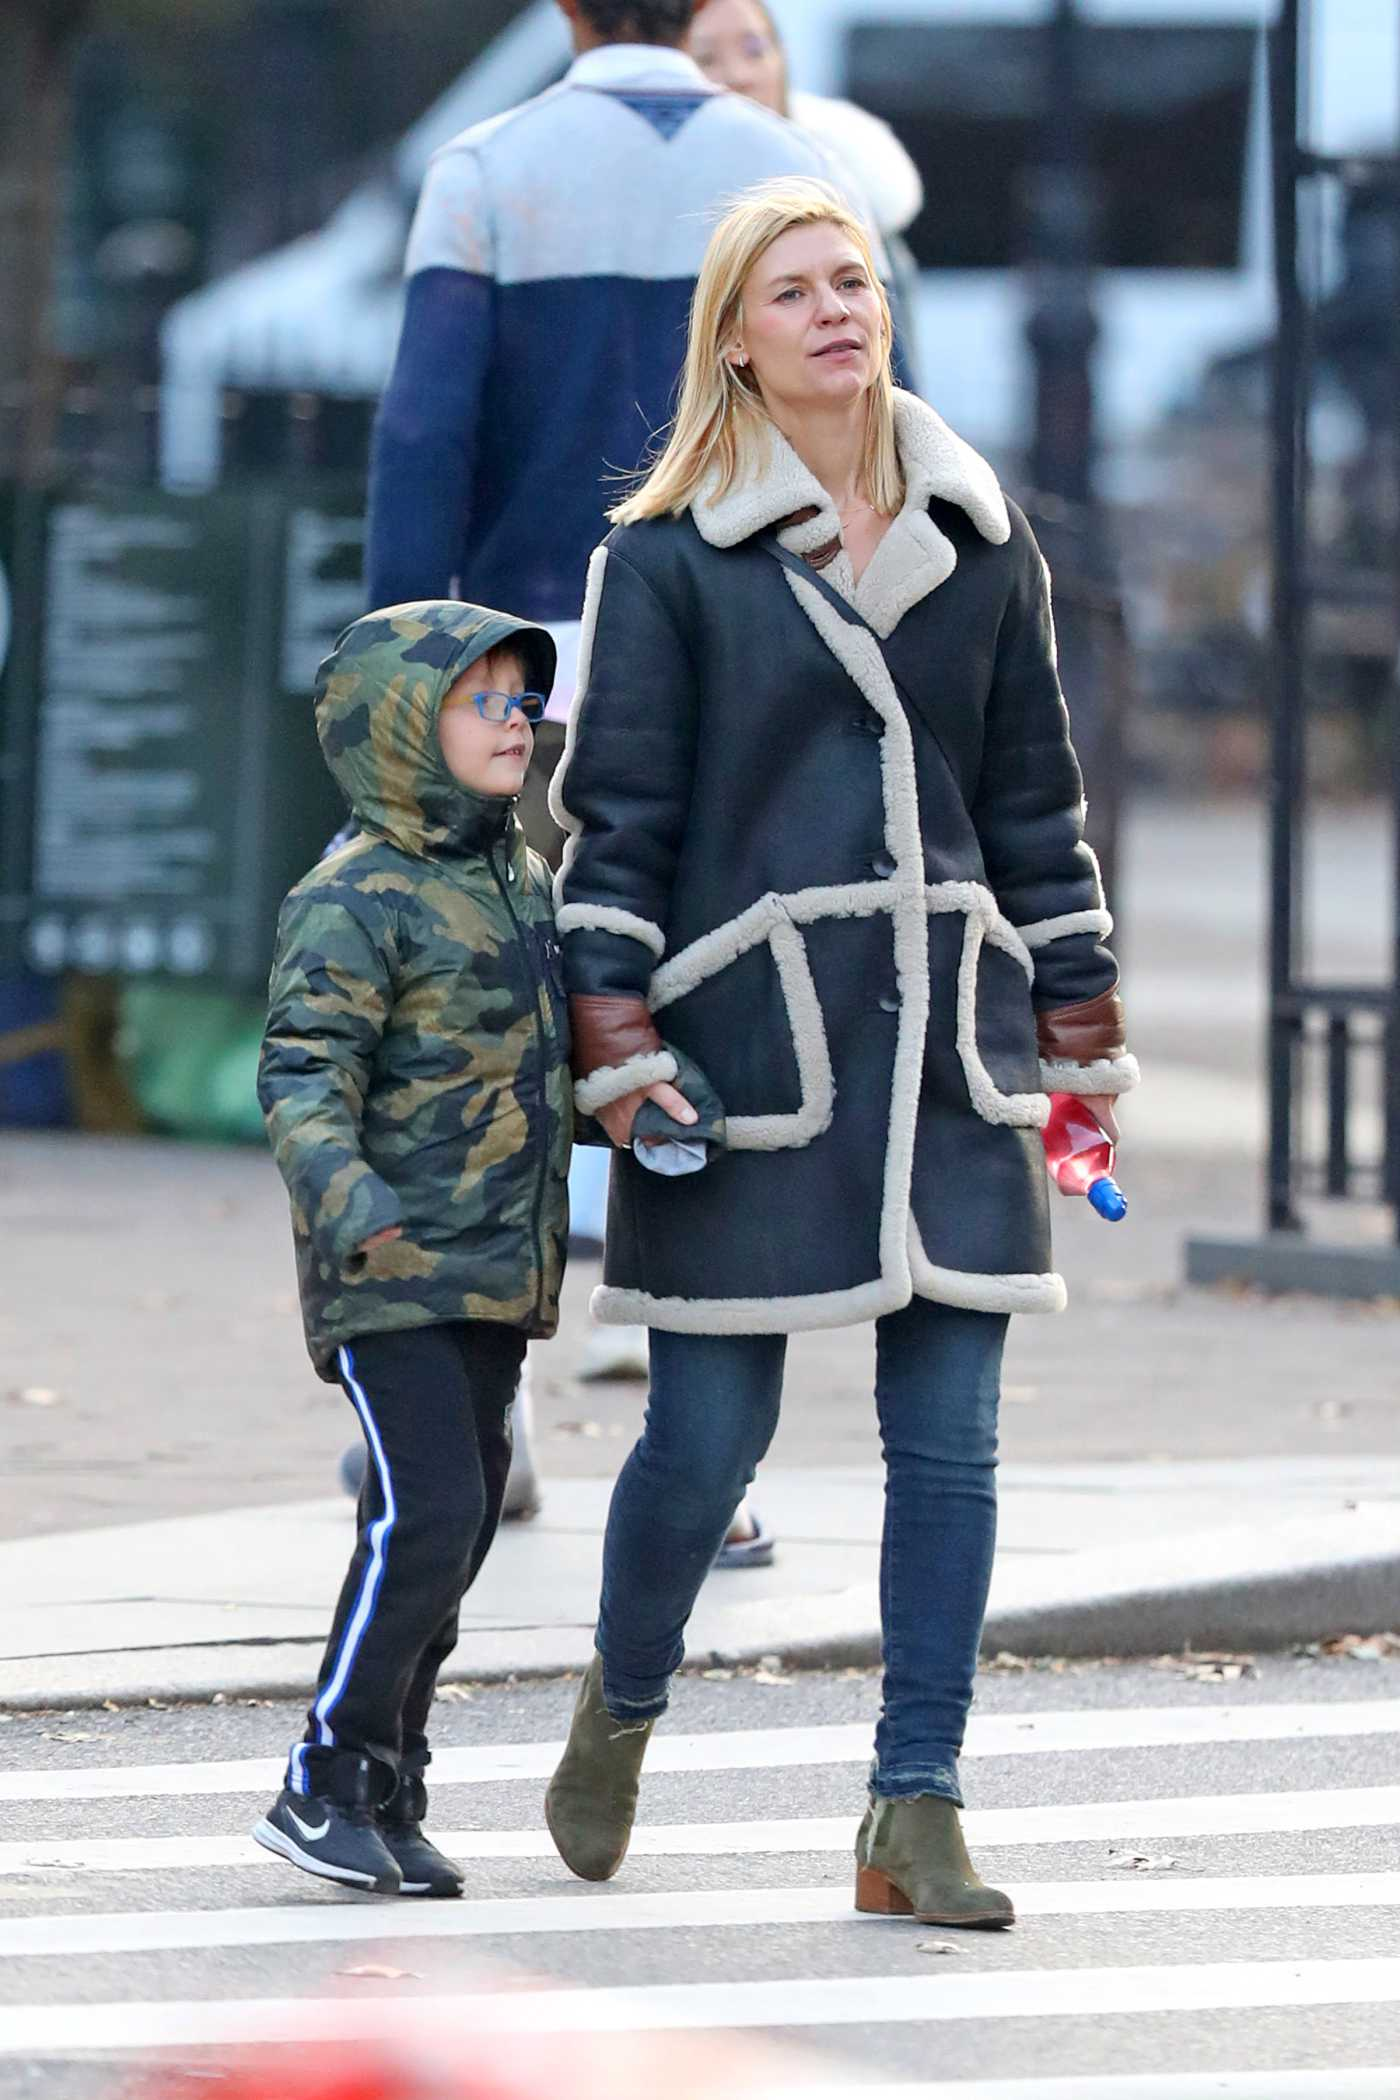 Claire Danes in a Black Sheepskin Coat Was Seen Out in NYC 11/29/2019